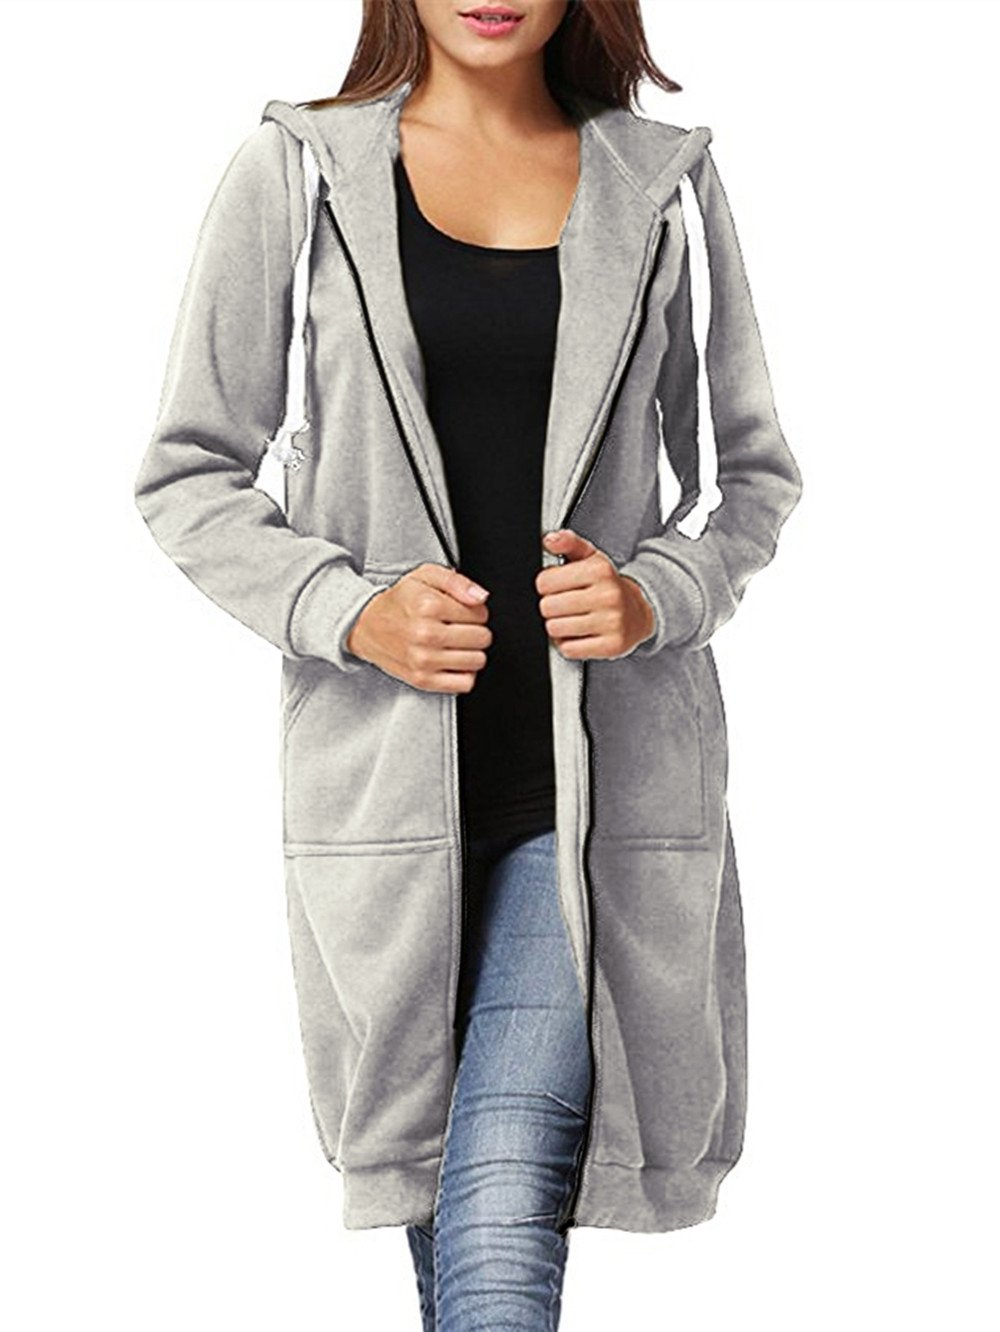 Dongpai Women's Casual Zip Up Hoodie Solid Long Jacket Sweatshirt Outerwear Plus Size